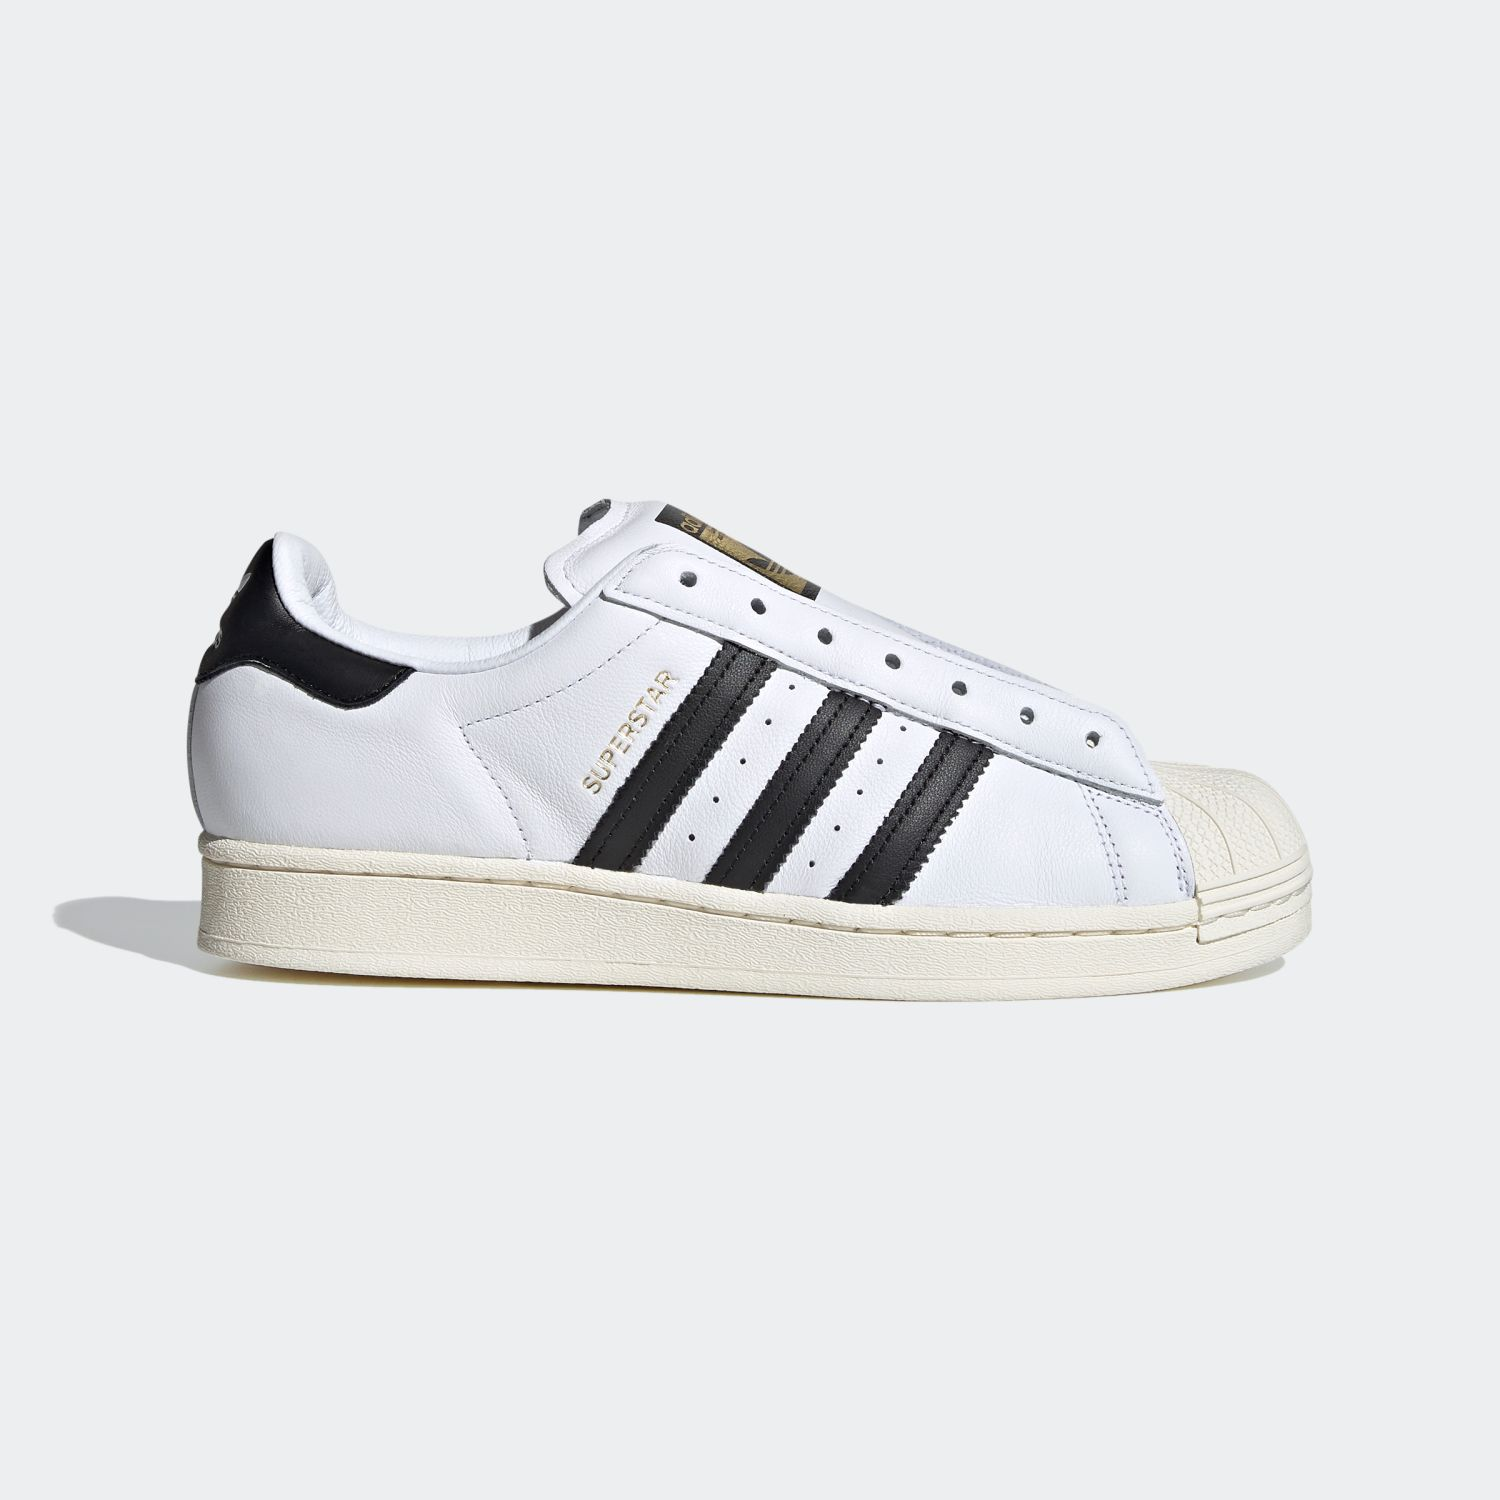 SUPERSTAR x Adidas Laceless White Black [1]